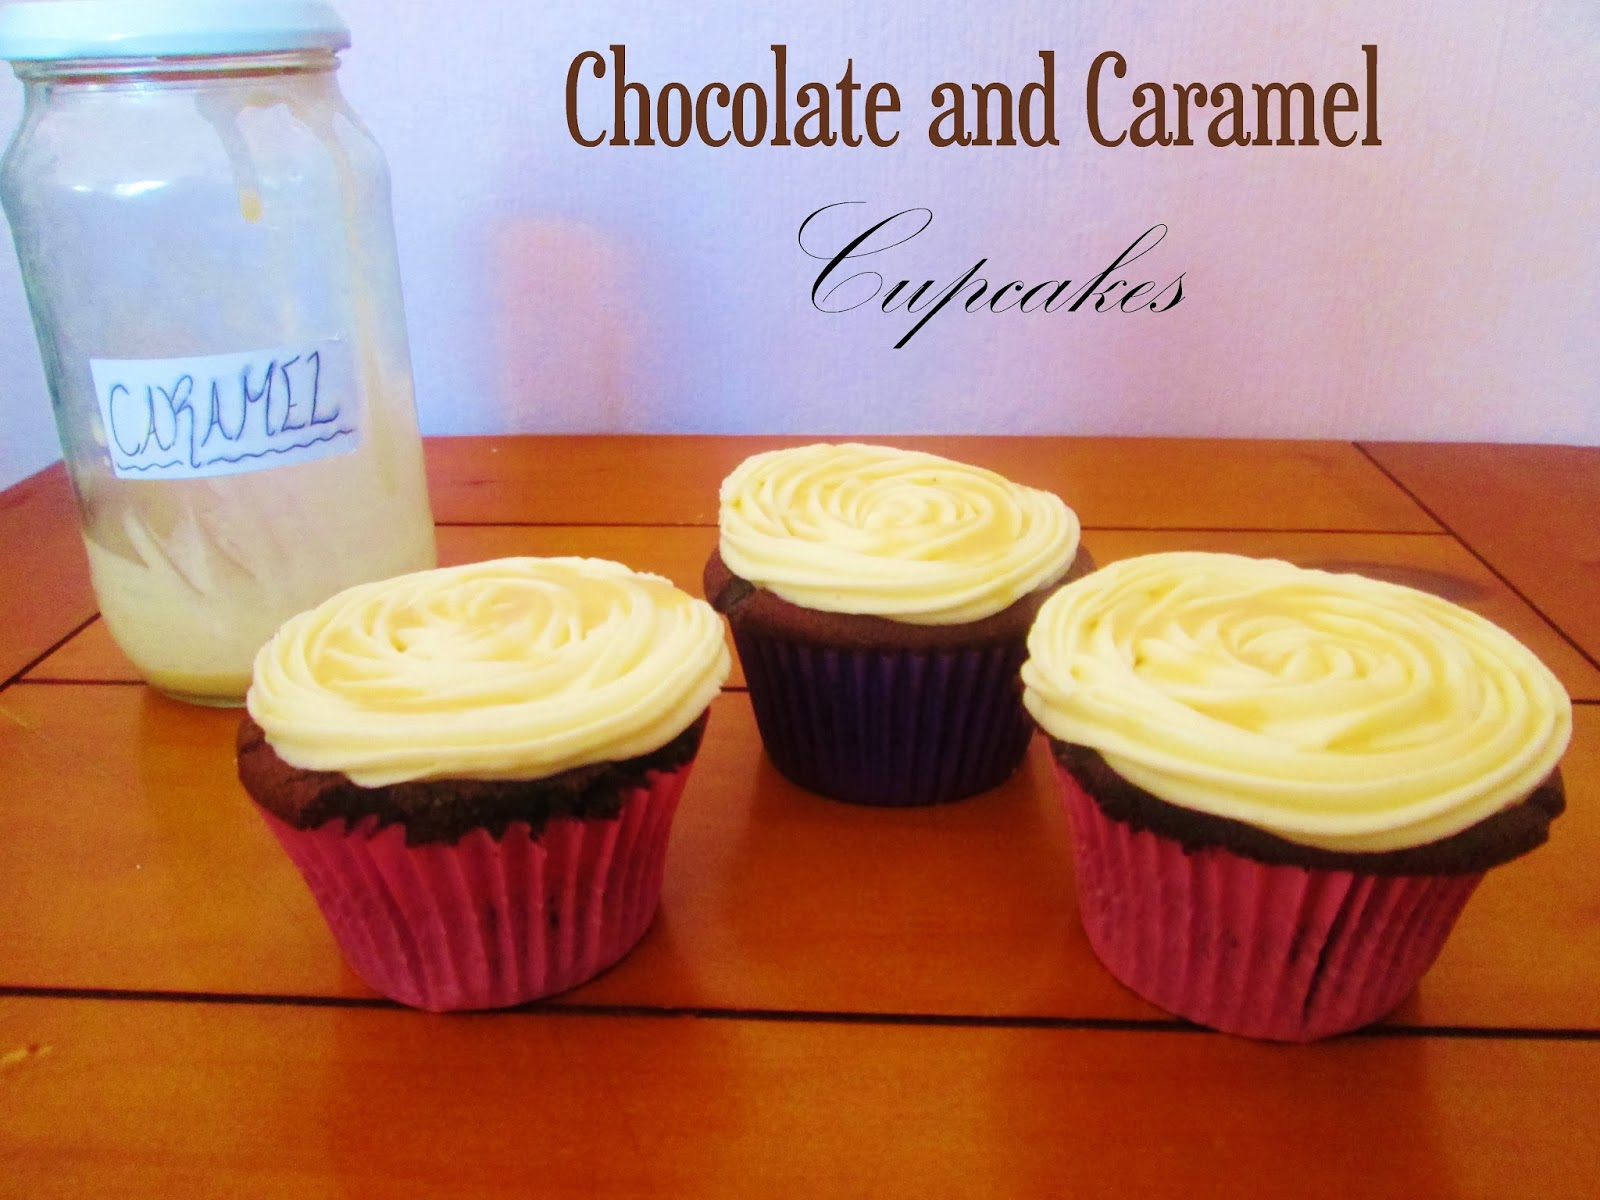 http://themessykitchenuk.blogspot.co.uk/2013/10/brownie-cupcakes-with-white-chocolate.html